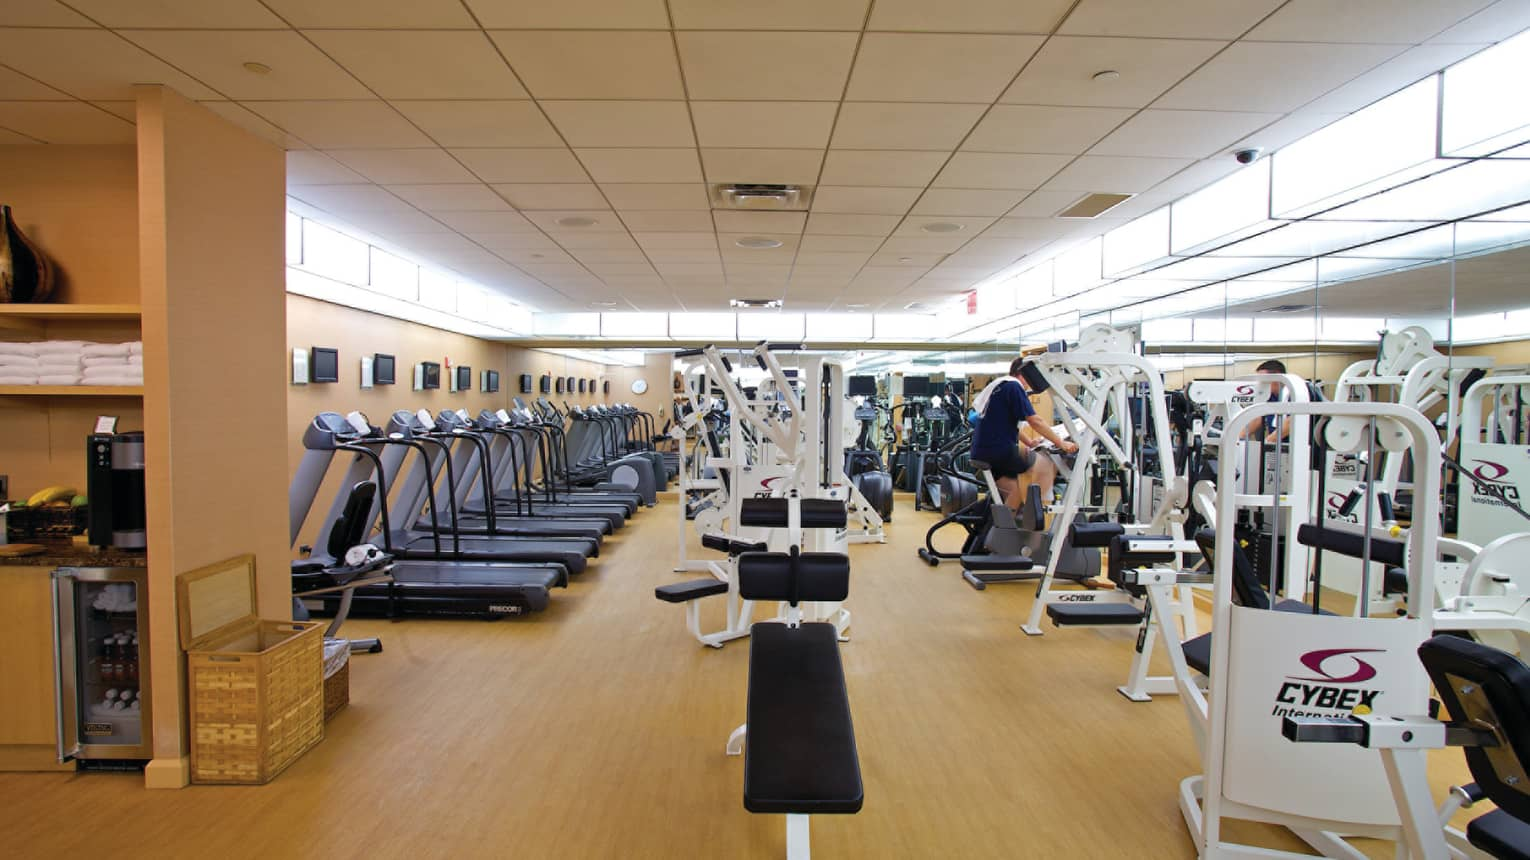 Rows of cardio machines, treadmills, bench presses in large Fitness Centre